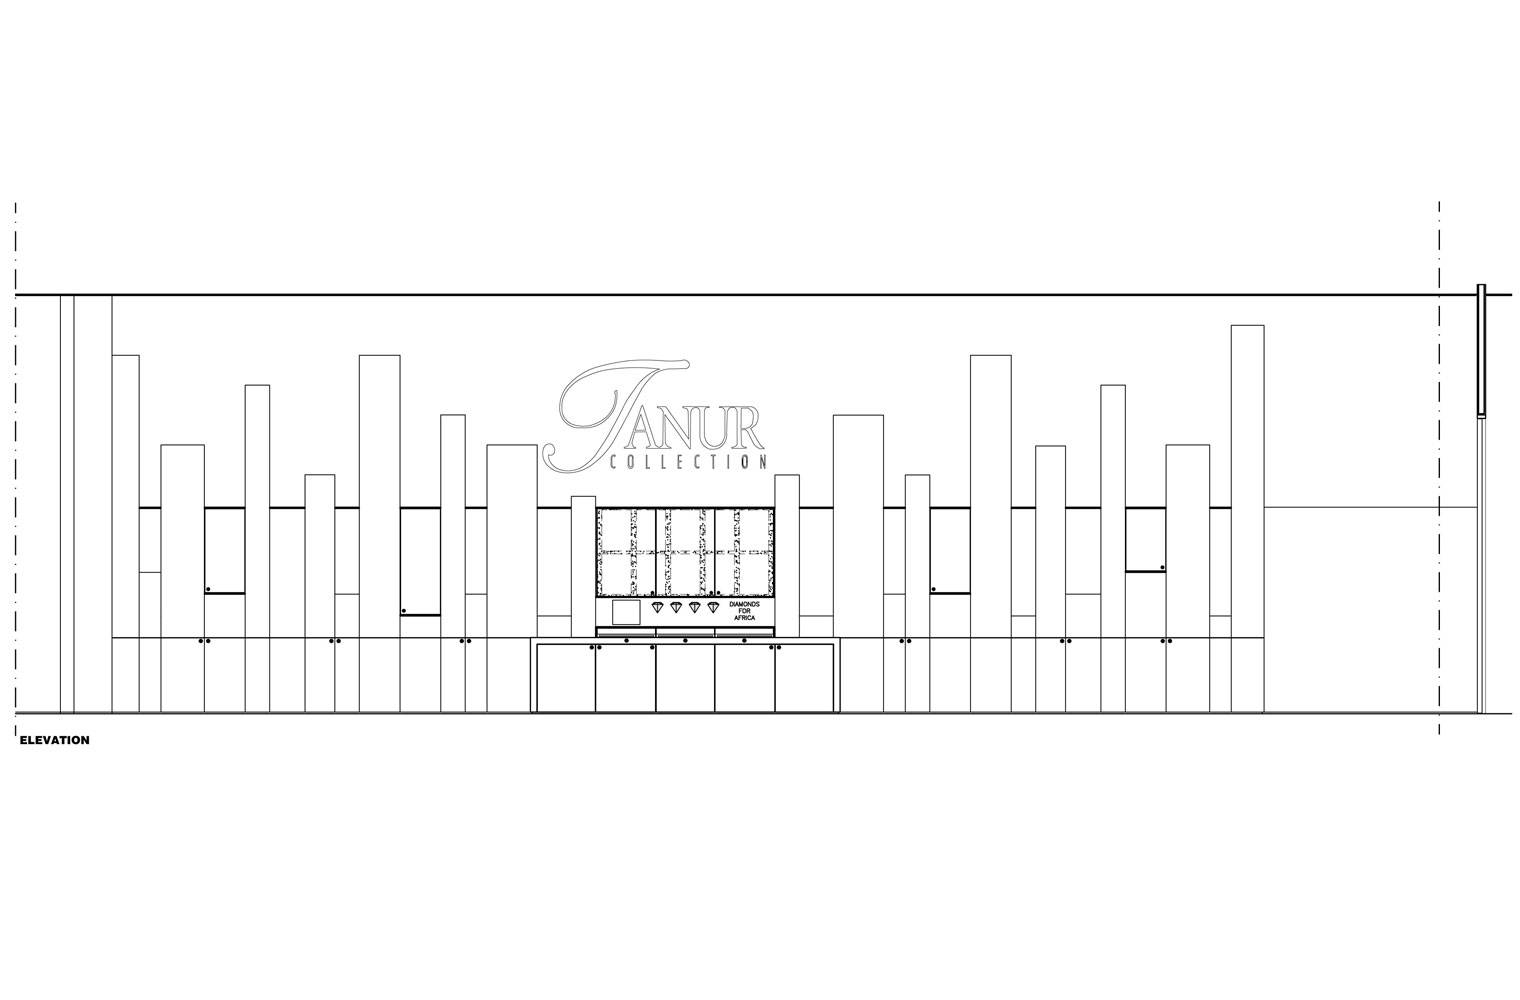 Tanur, Sandton City, Internal Elevation